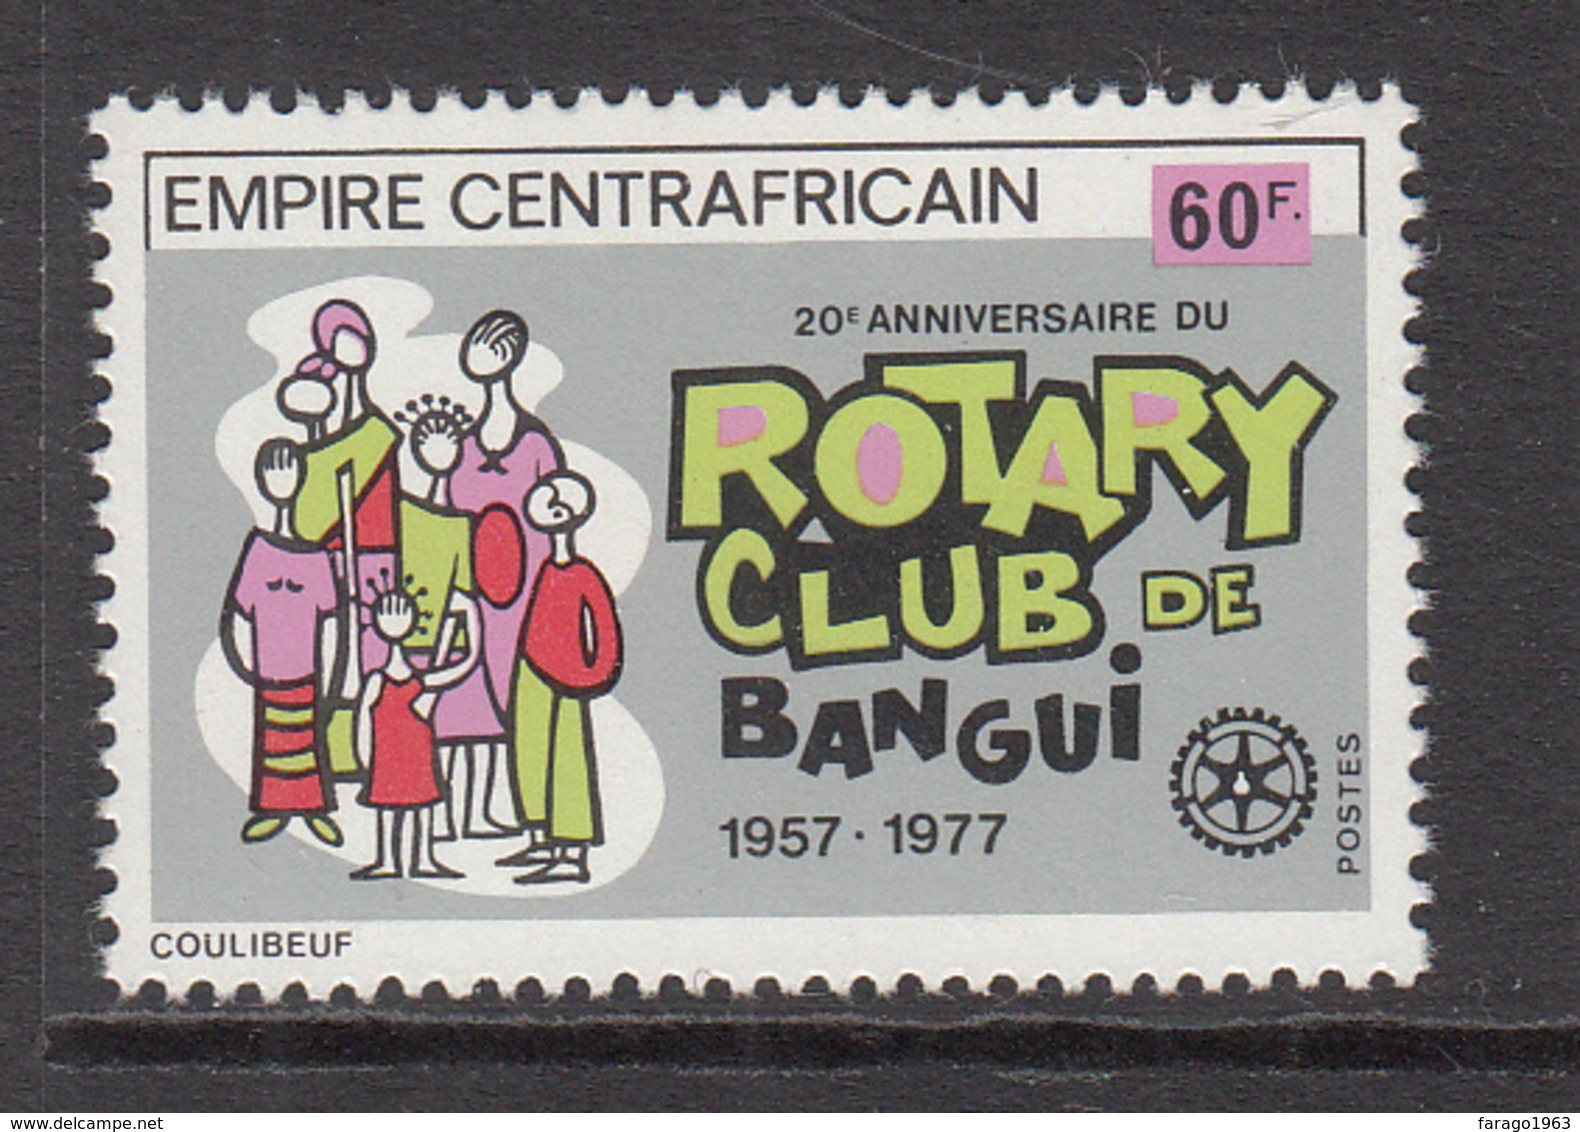 1977 Central African Republic 20th Anniv Bangui Rotary Club People & Emblem Set Of 1 MNH - Centraal-Afrikaanse Republiek